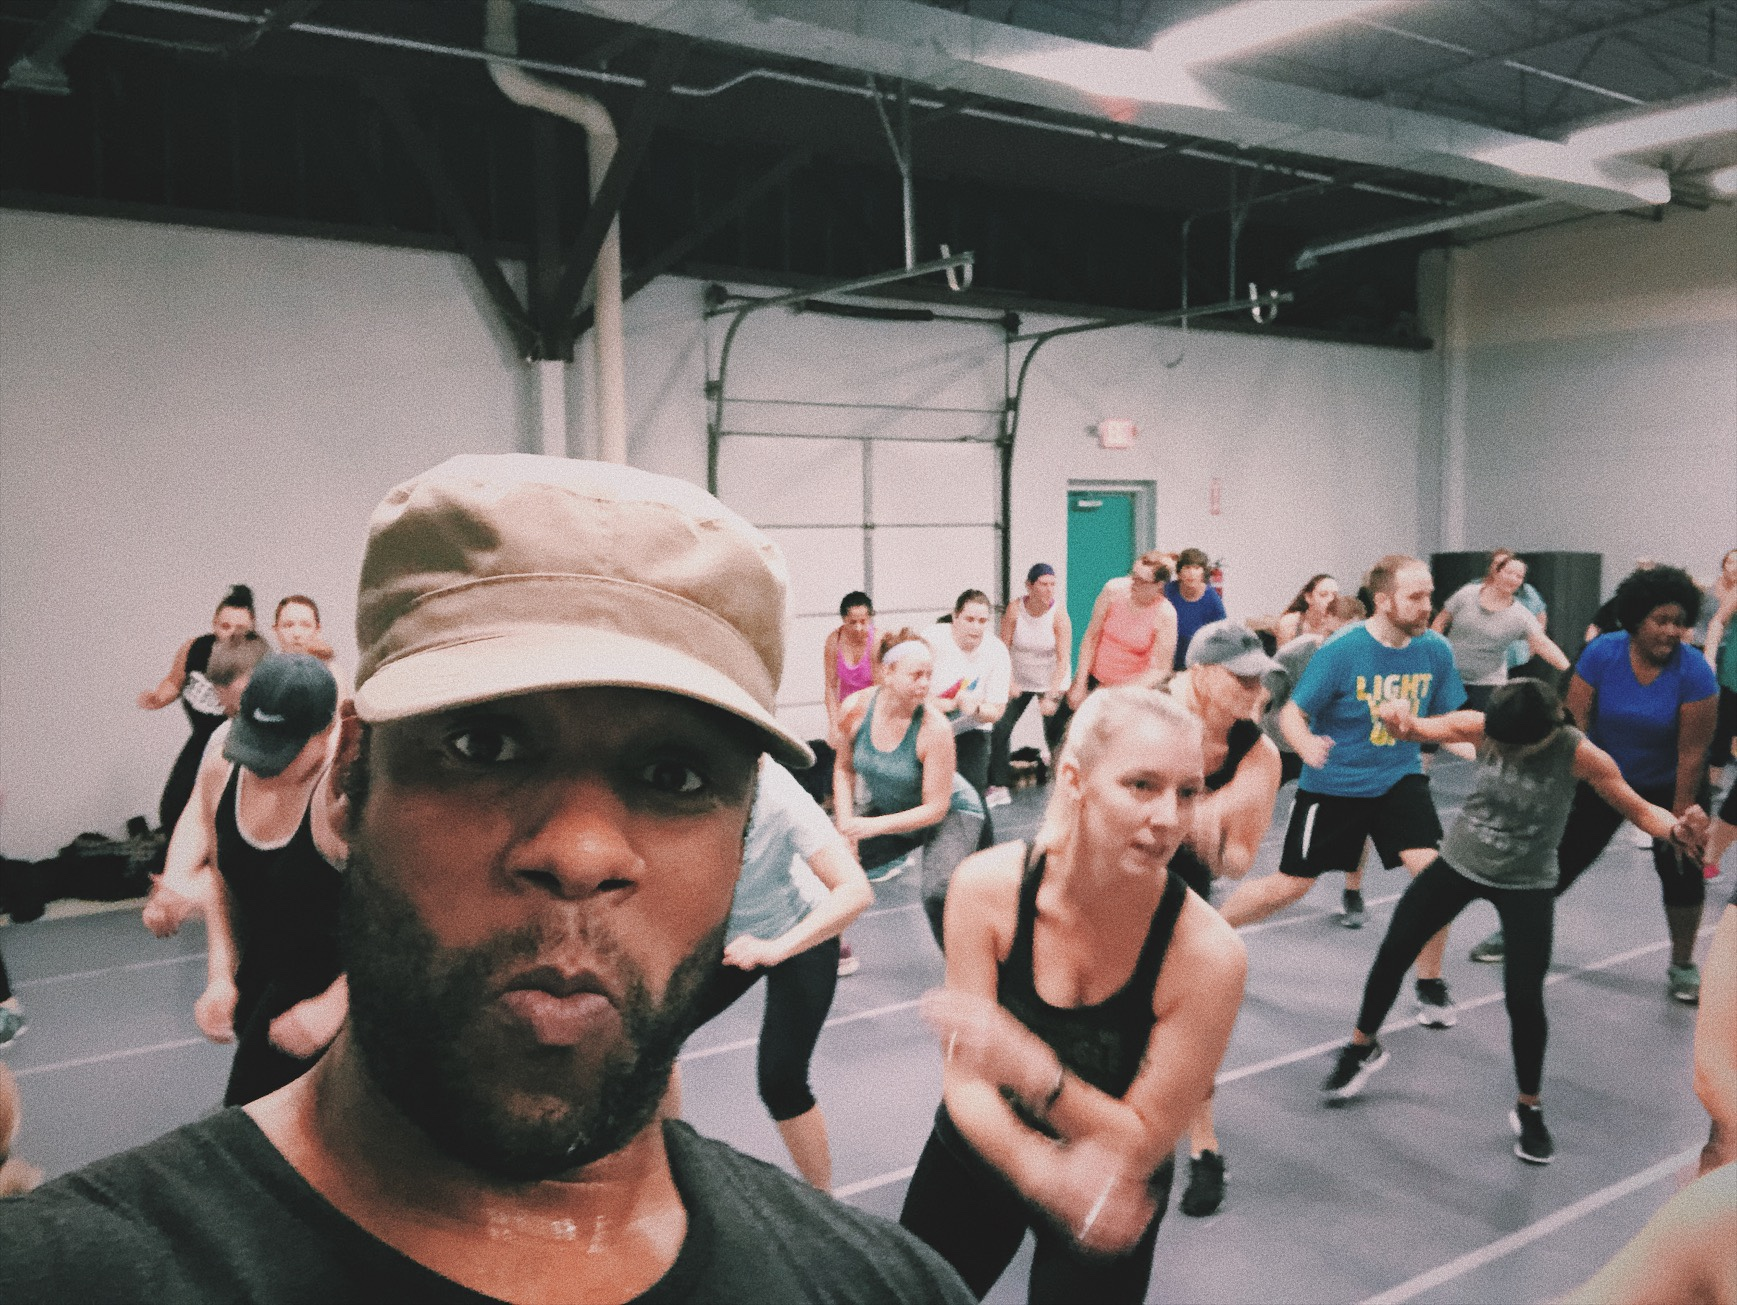 M. Nicholson hip hop fitness instructor Mike Nicholson looks at the camera while people are performing moments in his dance fitness class